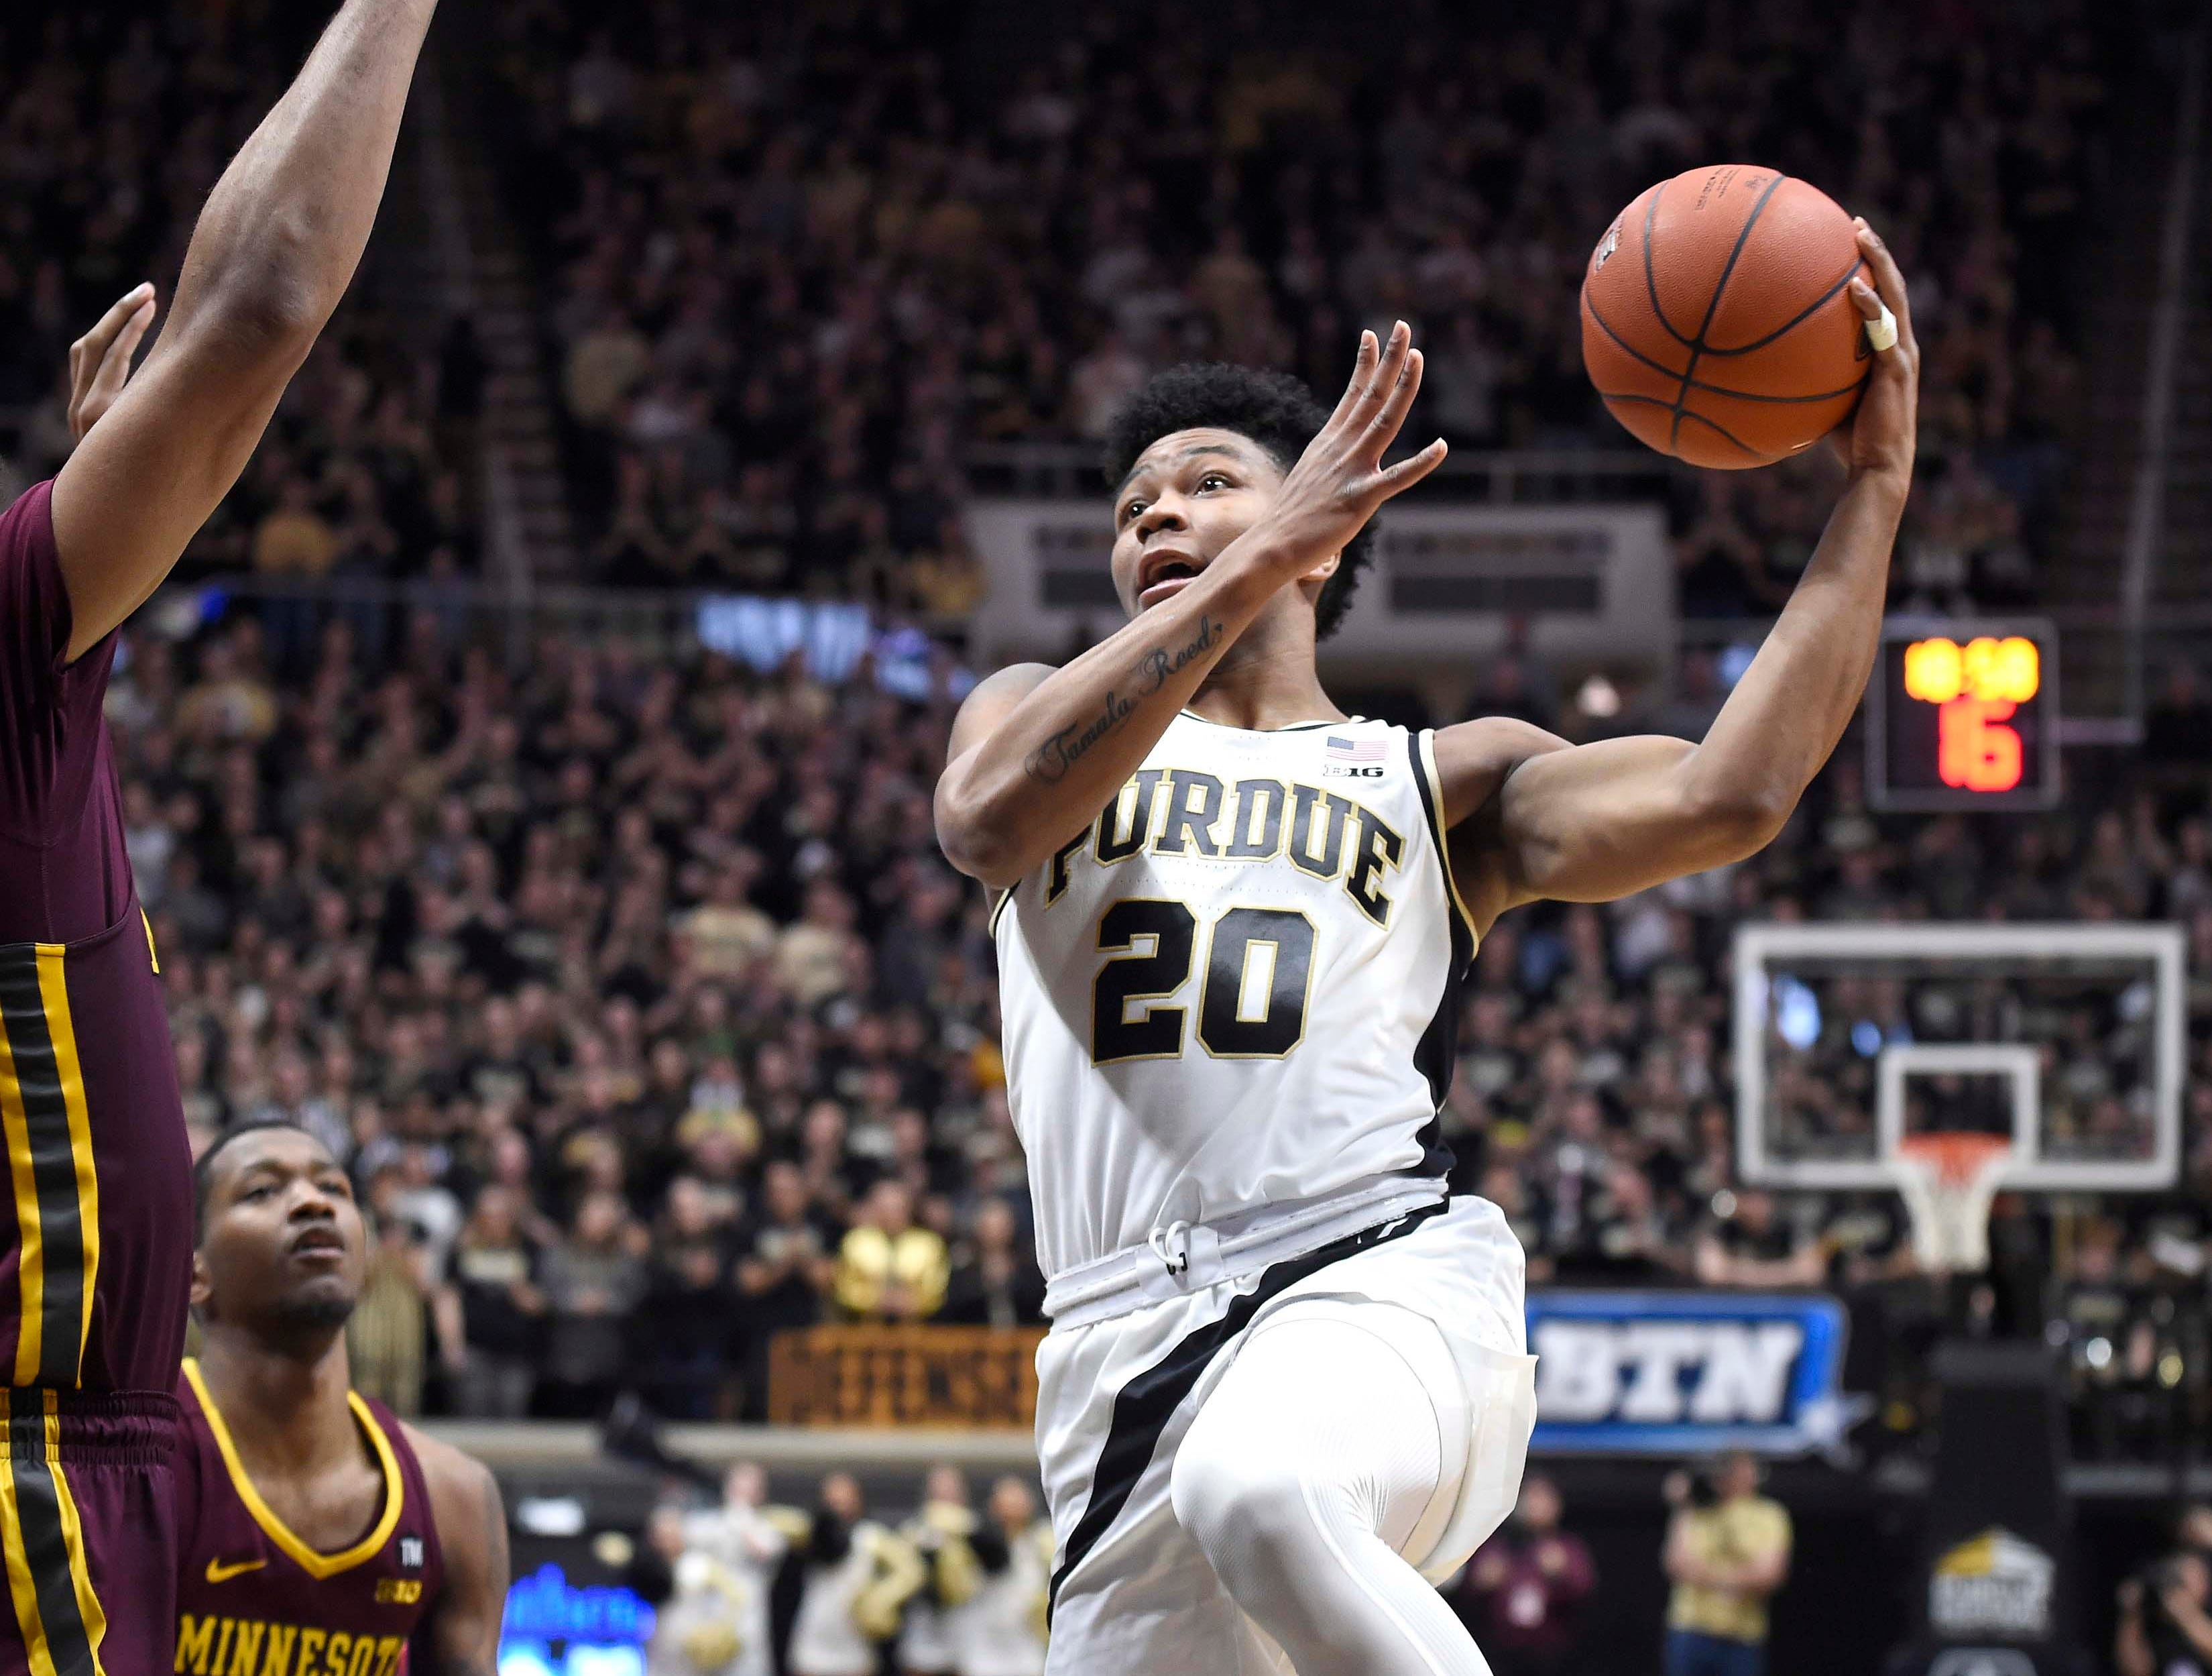 Feb 3, 2019; West Lafayette, IN, USA; Purdue Boilermakers guard Nojel Eastern (20) drives for a shot over against the Minnesota Golden Gophers defender in the 2nd half at Mackey Arena. Mandatory Credit: Sandra Dukes-USA TODAY Sports